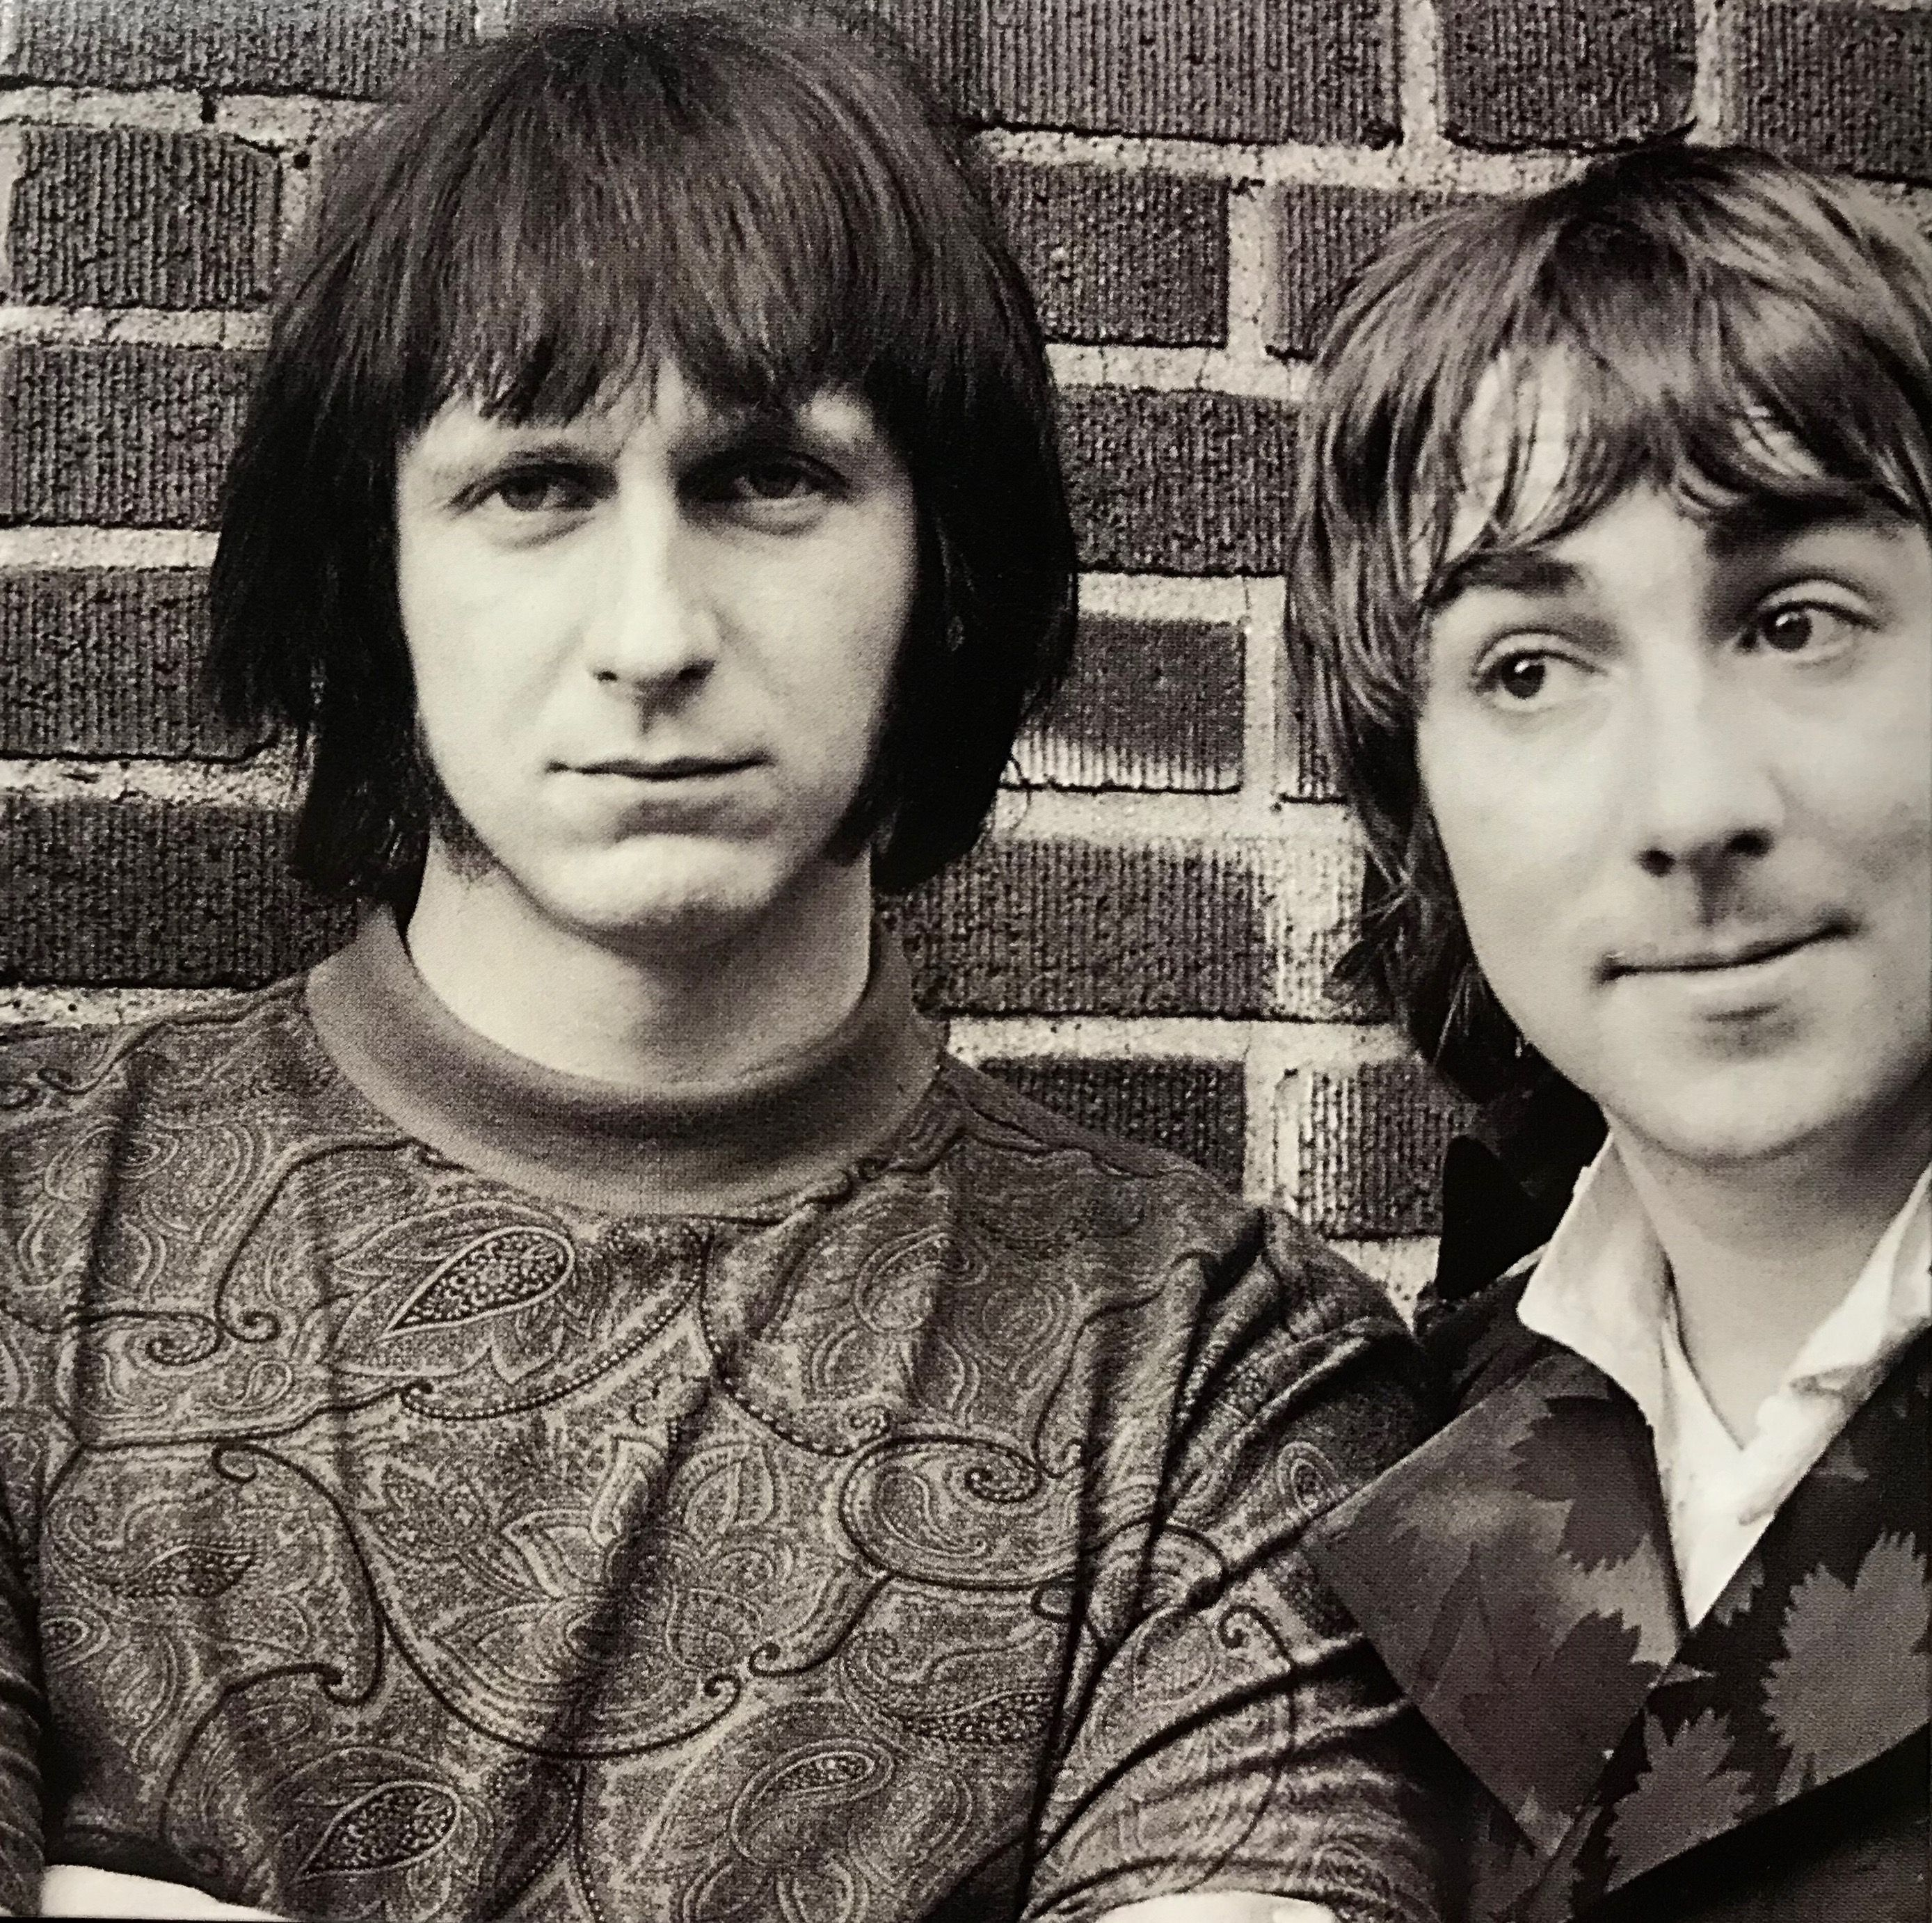 John Entwistle Keith Moon Keith Moon John Entwistle Rock Legends